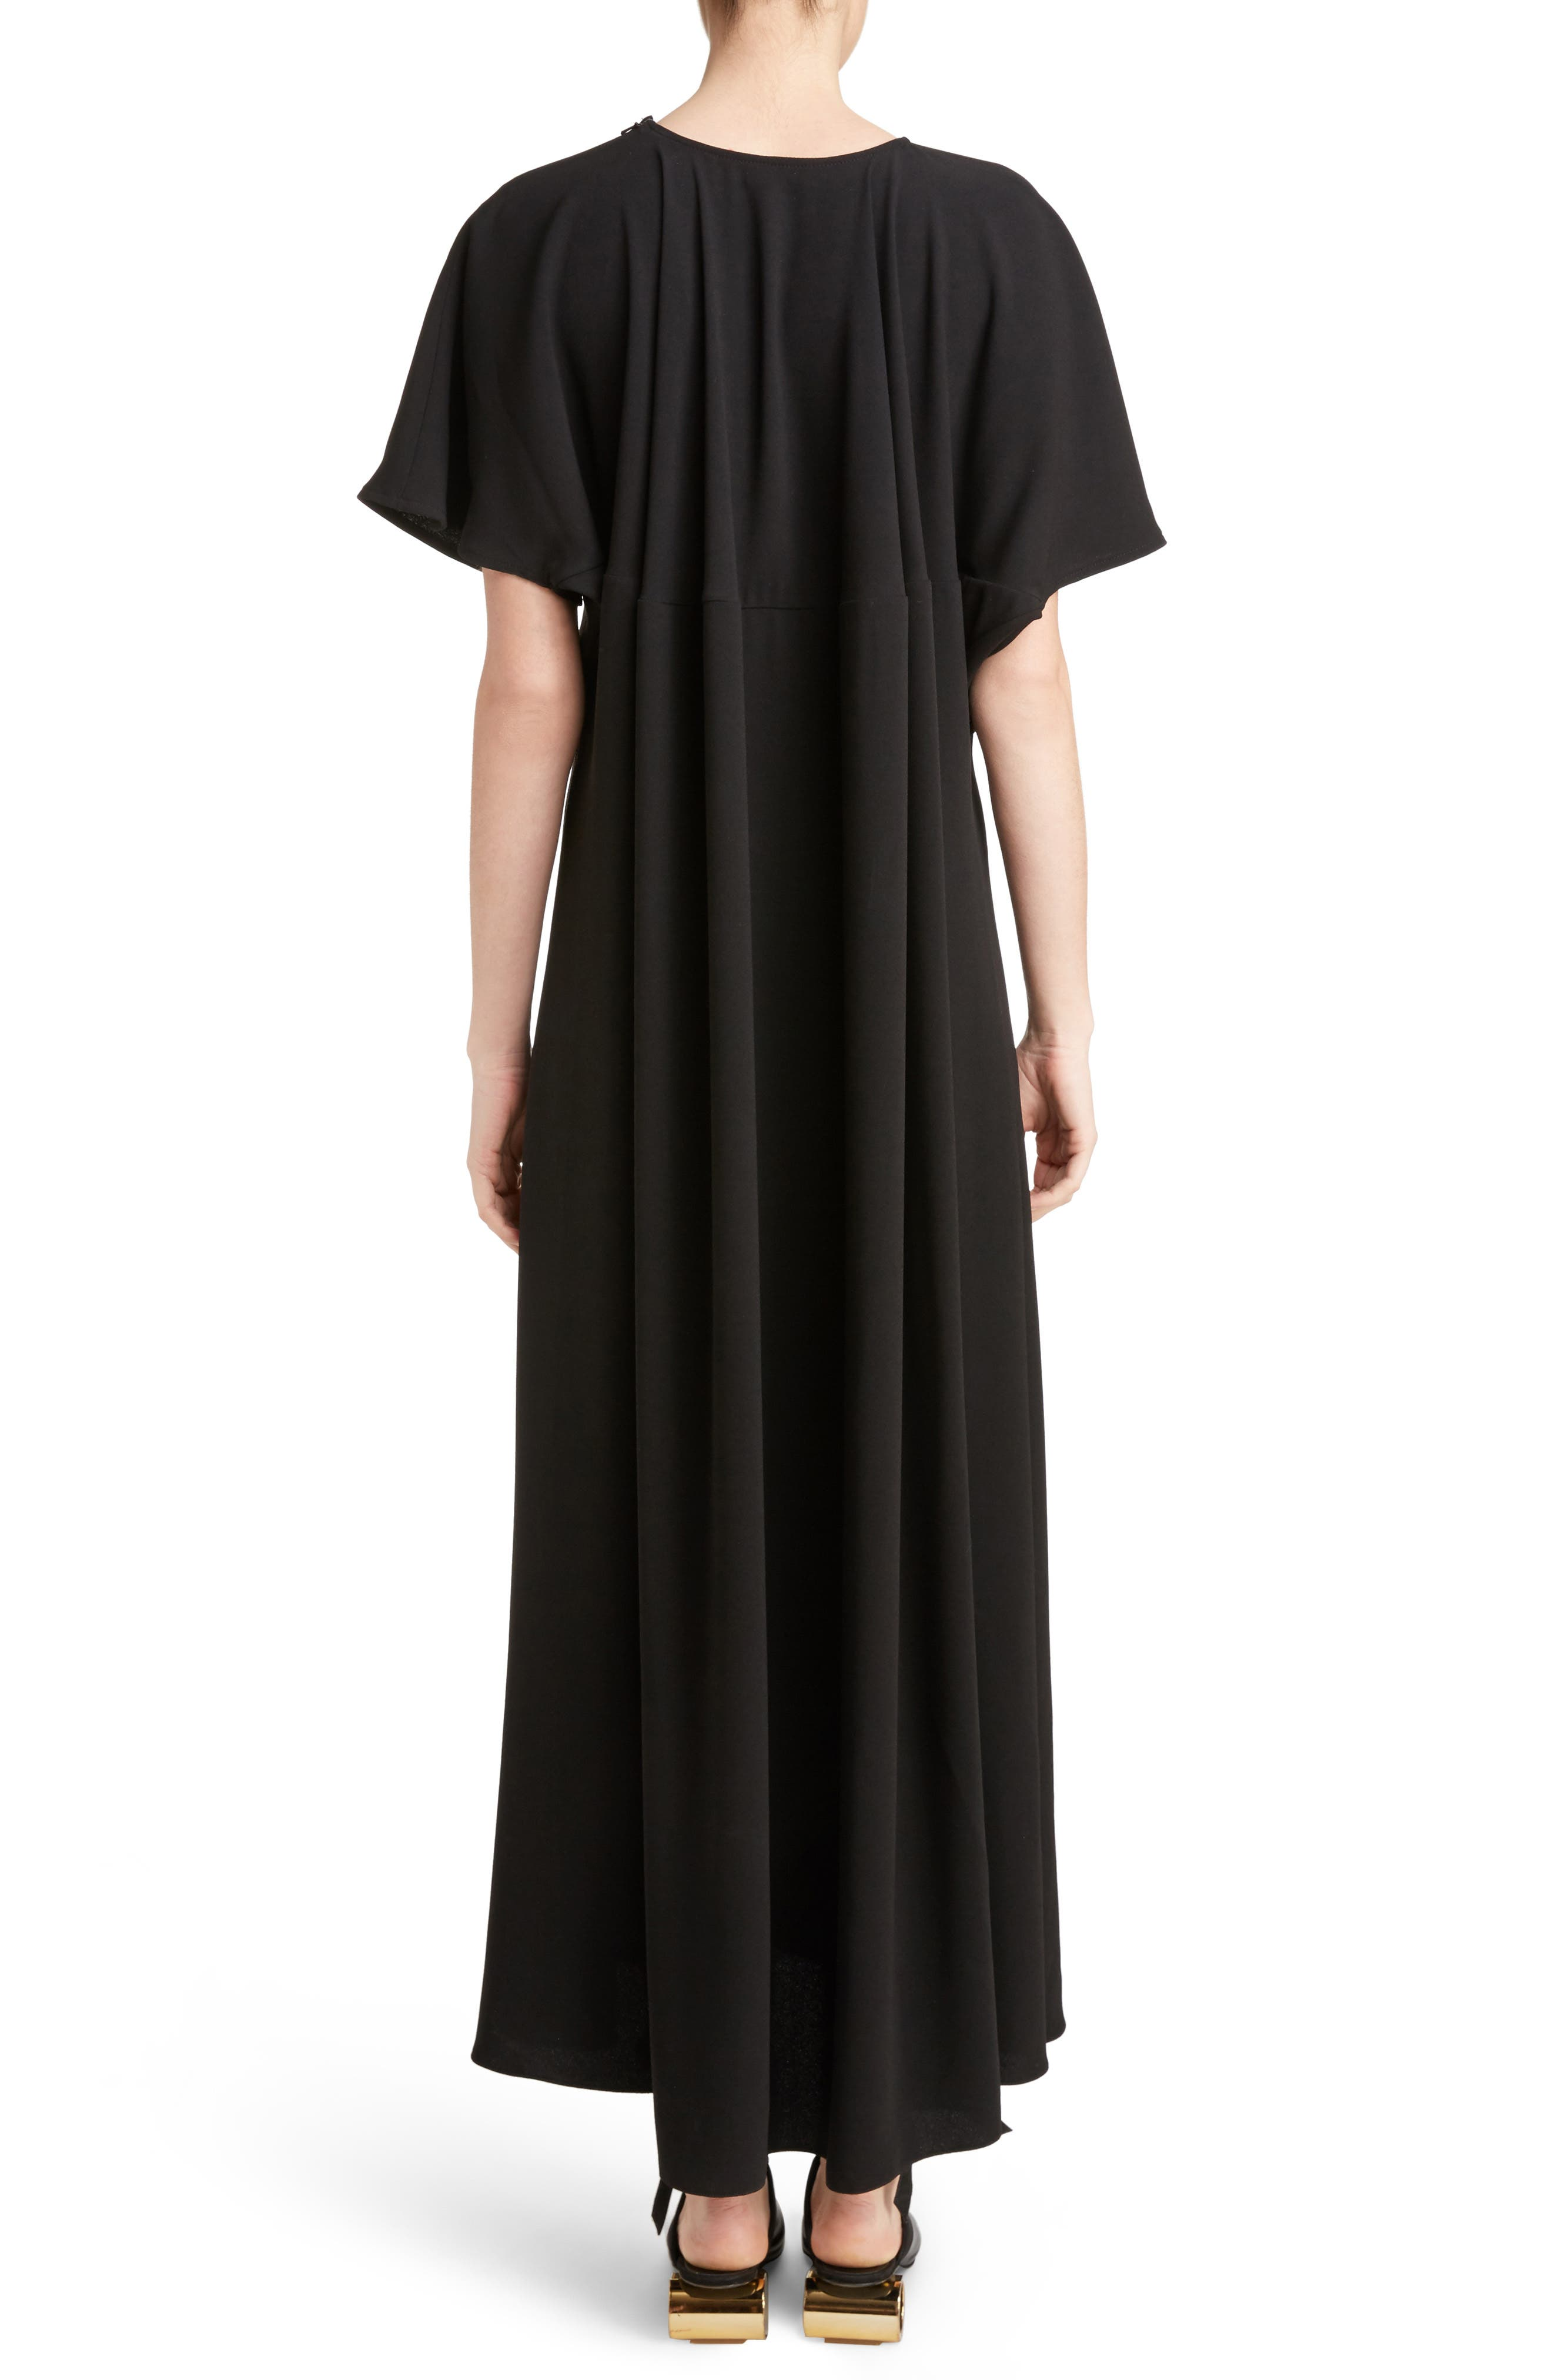 J.W.ANDERSON Cap Sleeve Maxi Dress,                             Alternate thumbnail 2, color,                             Black